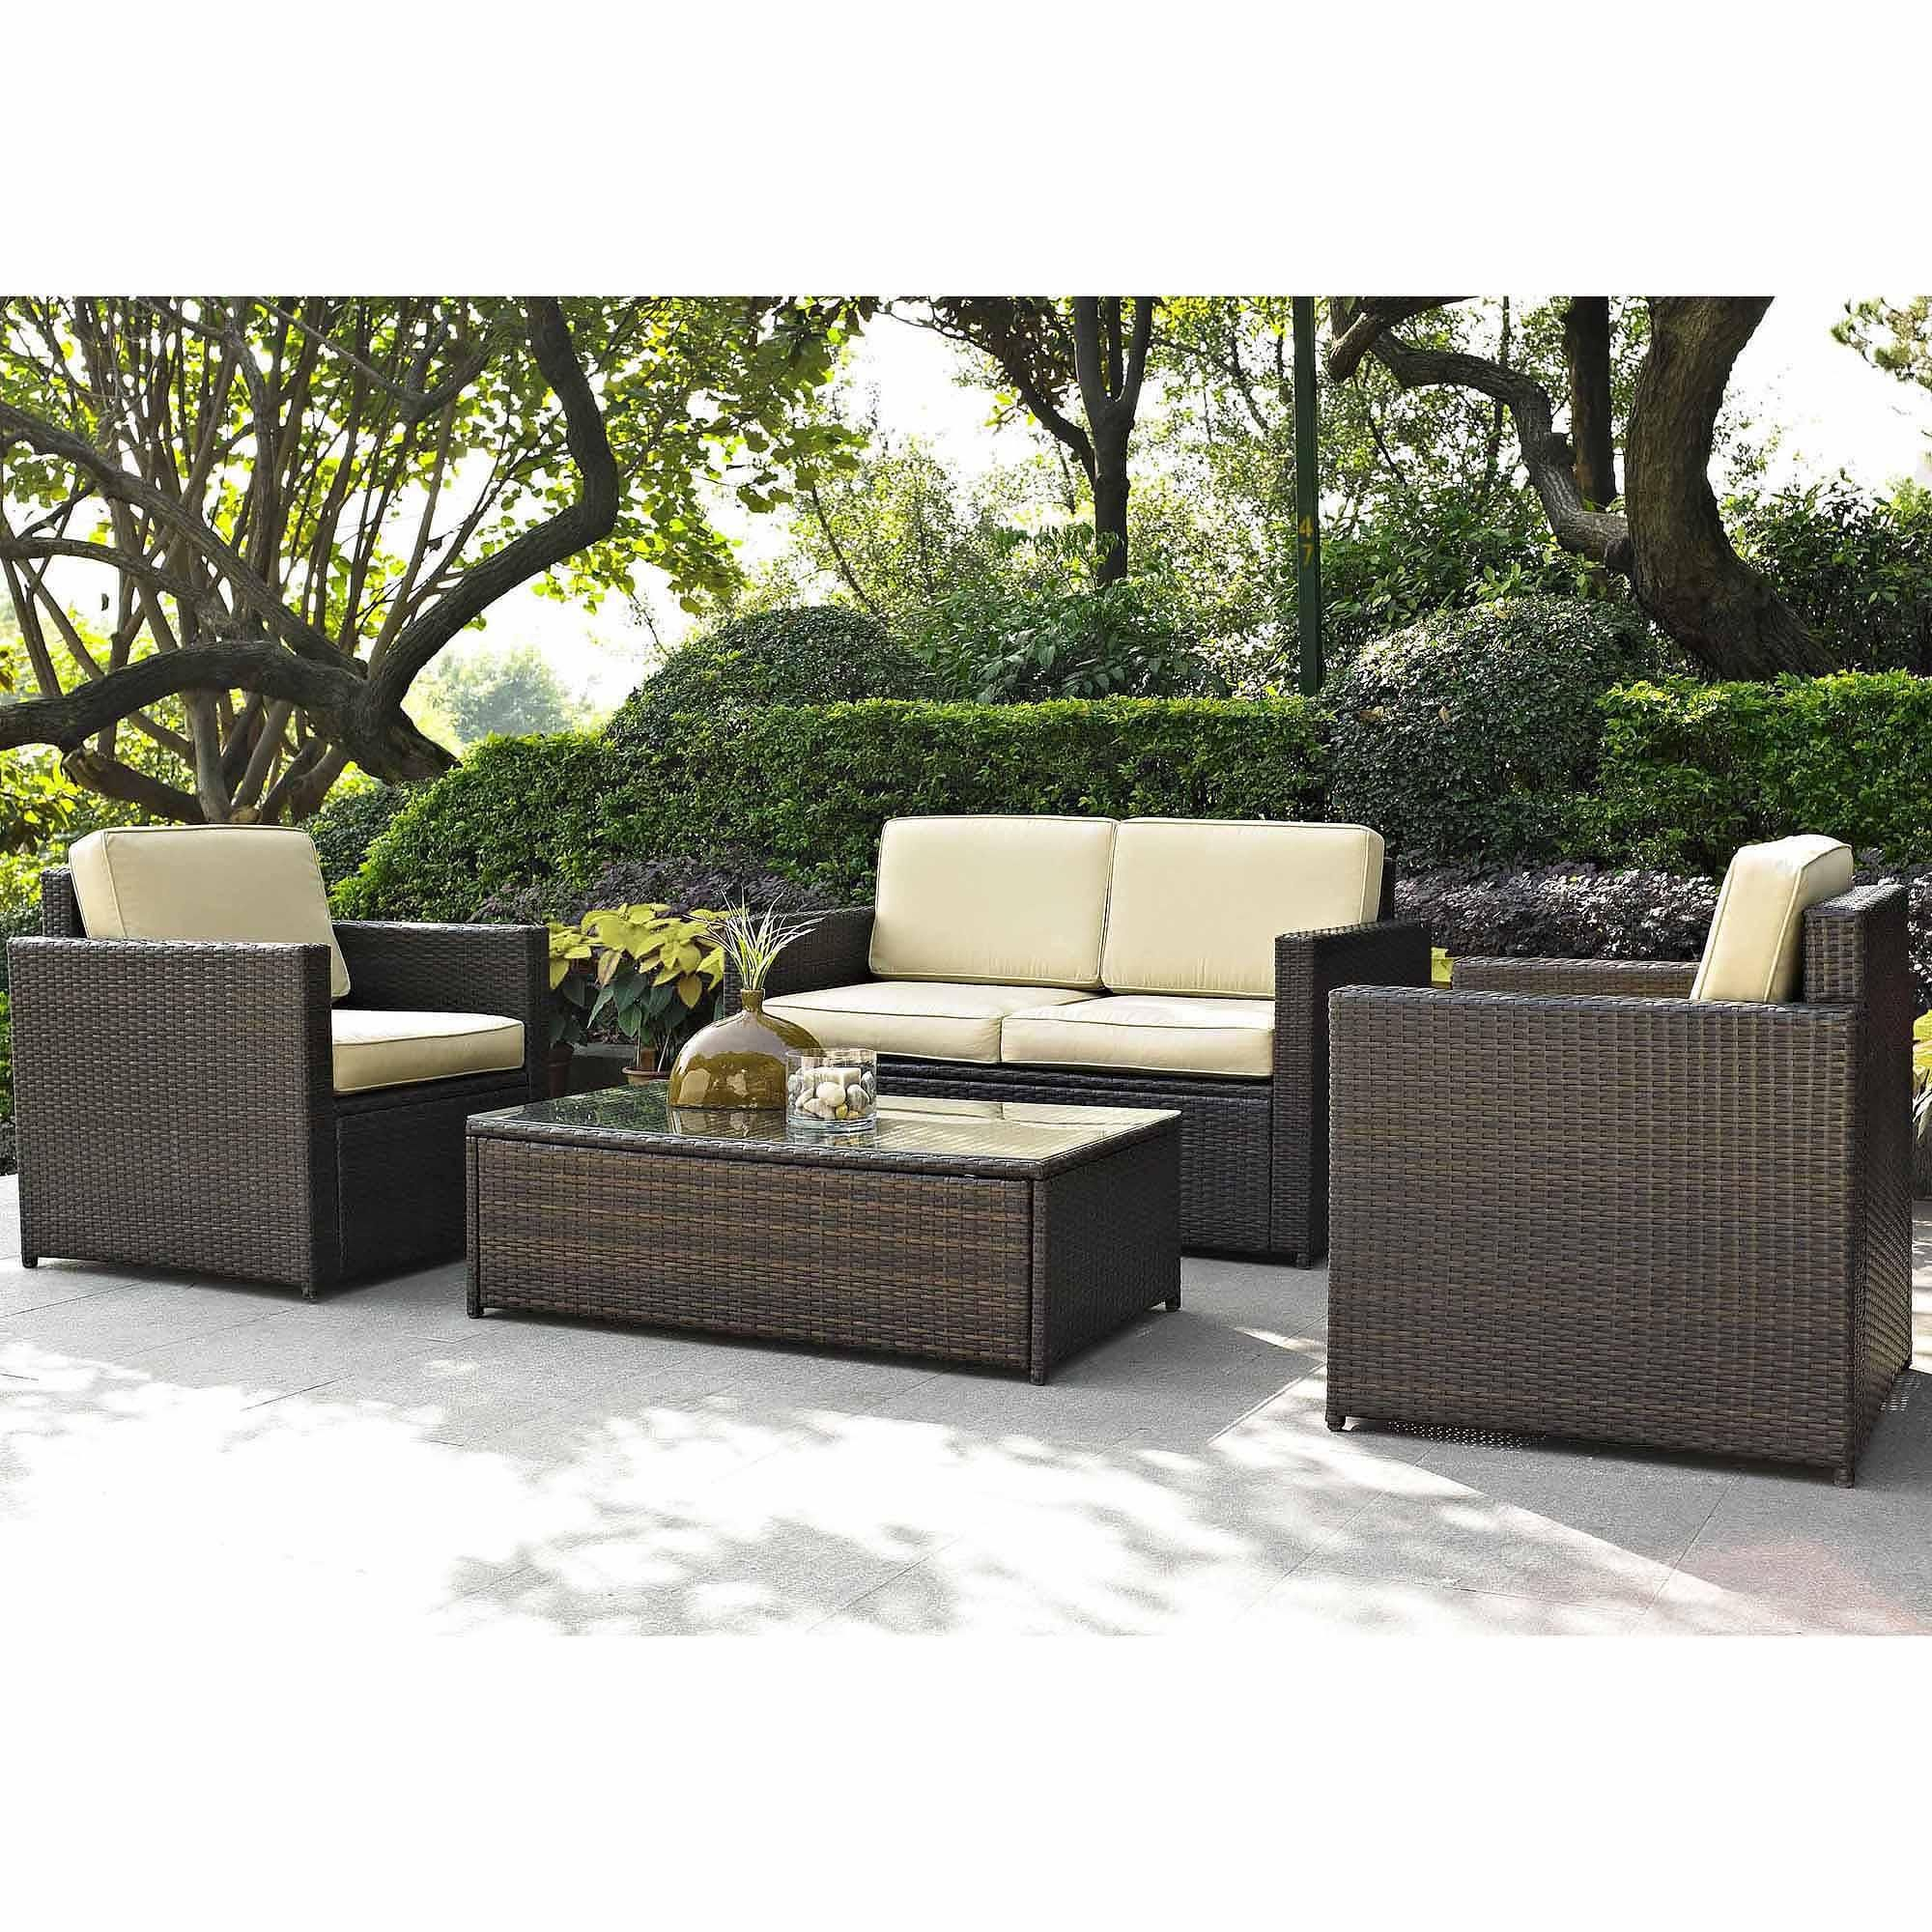 Furnitures Awesome Wicker Patio Furniture With Yellow Cushions